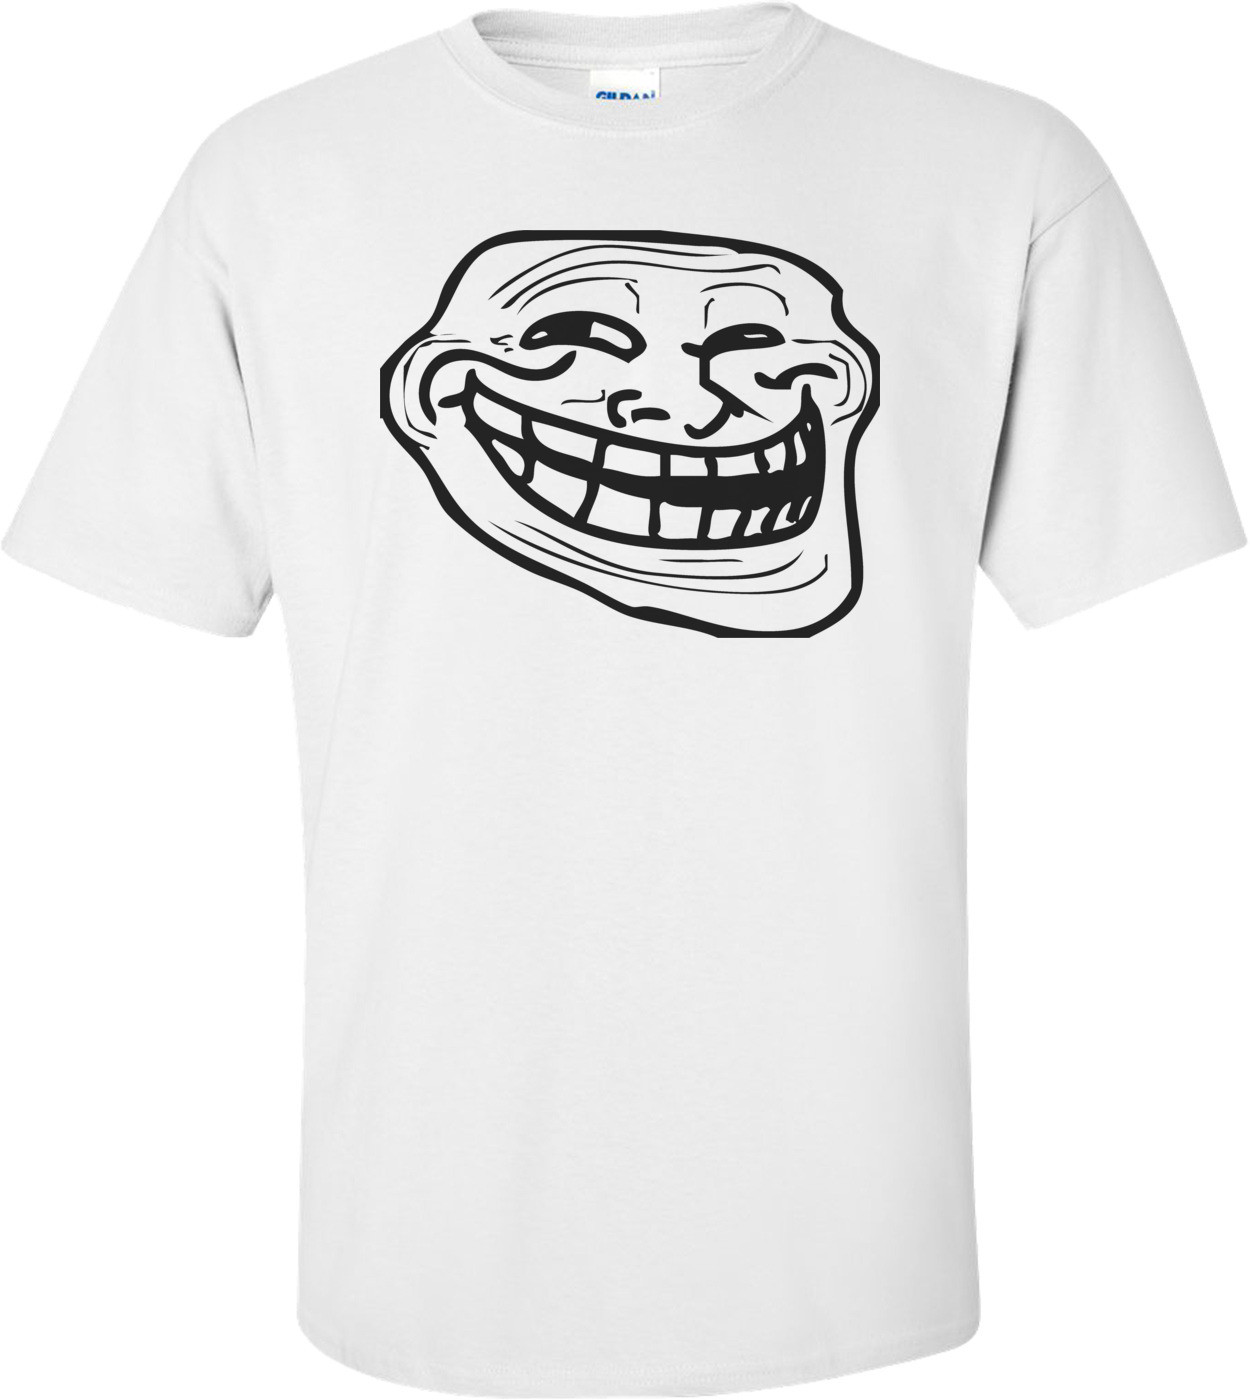 Troll Face The T-shirt